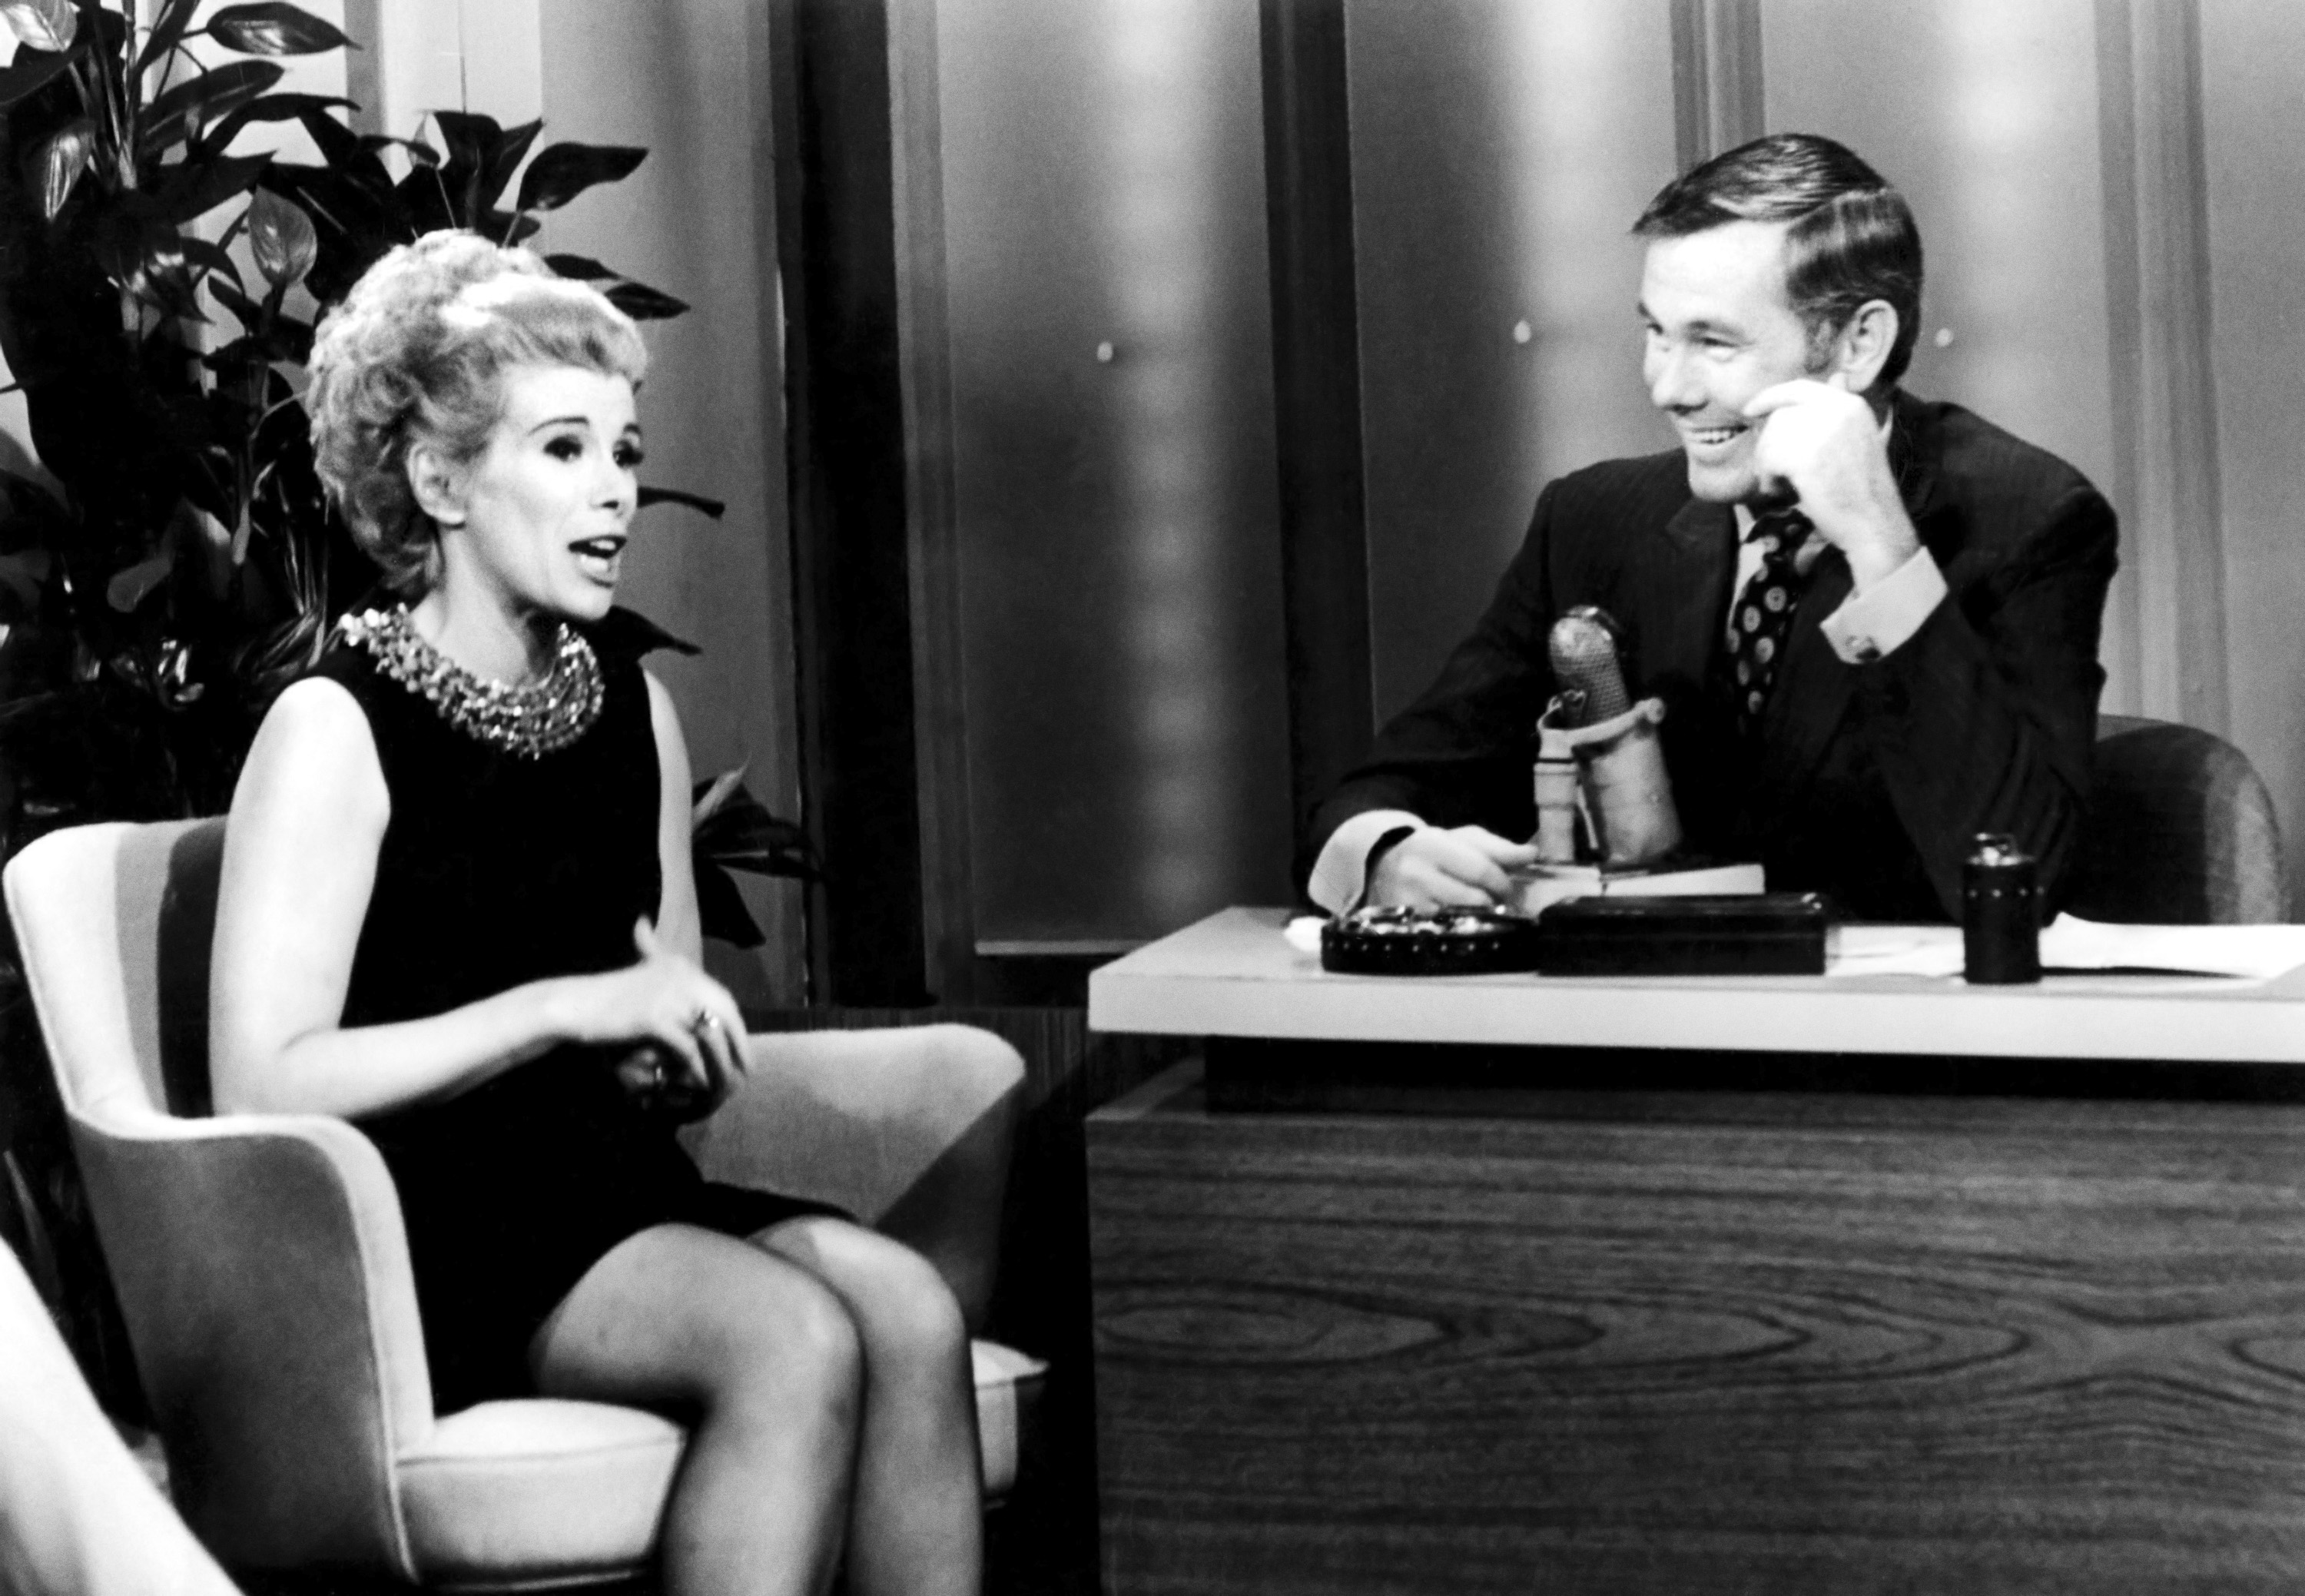 Joan's epic fallout with Johnny Carson